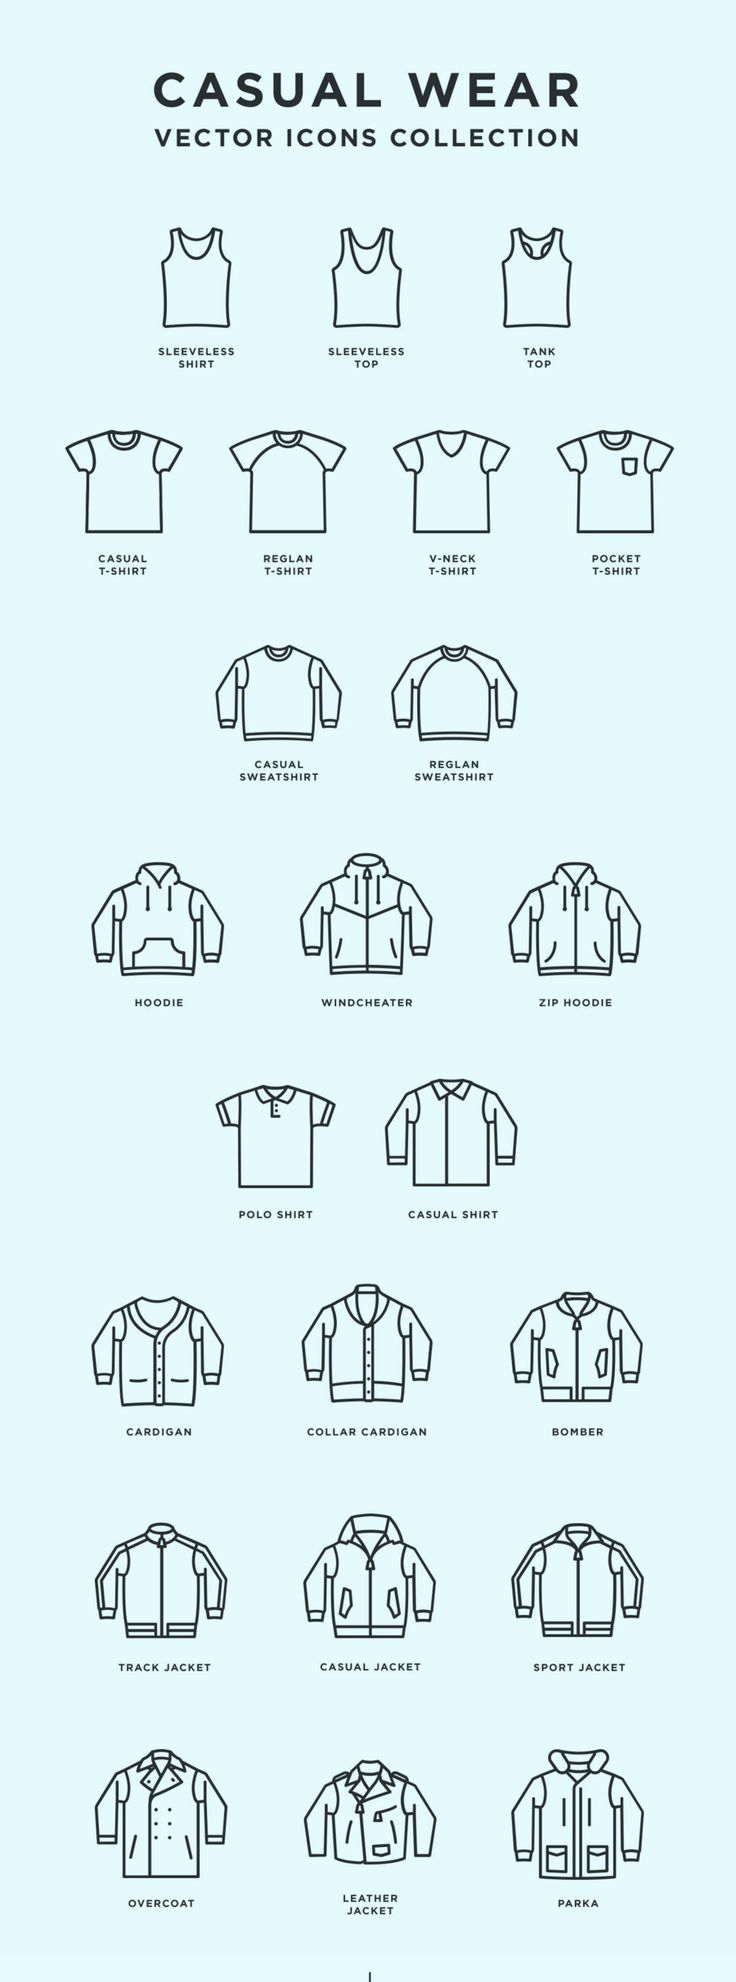 Casual Wear Free Vector Icons Vector icons, Vector